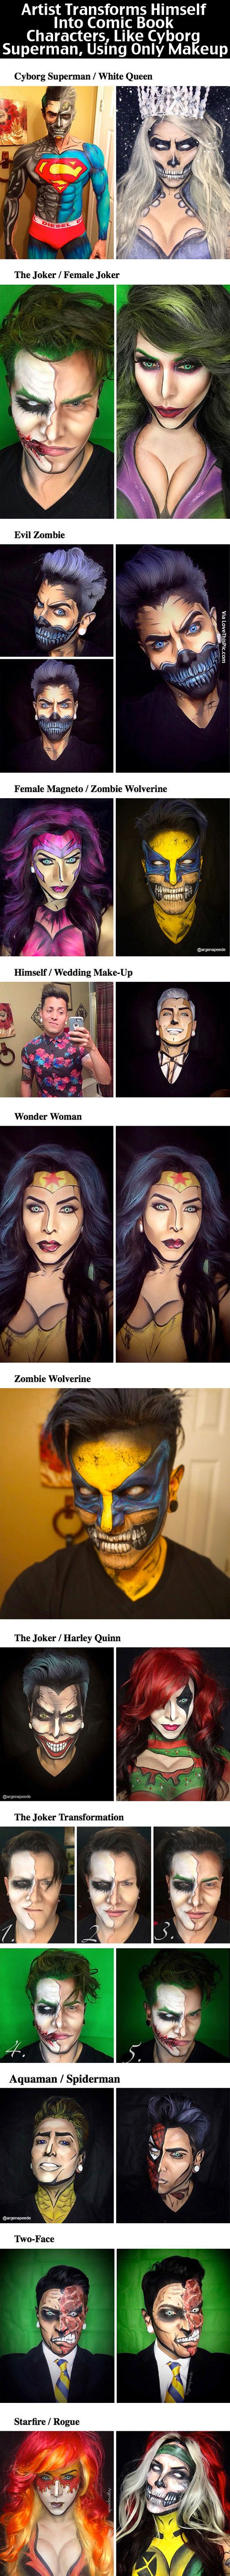 Artist Transforms Himself Into Comic Book Characters, Like Cyborg Superman, Using Only Makeup makeup art cool artistic halloween halloween makeup ideas comic book superheroes supervillians